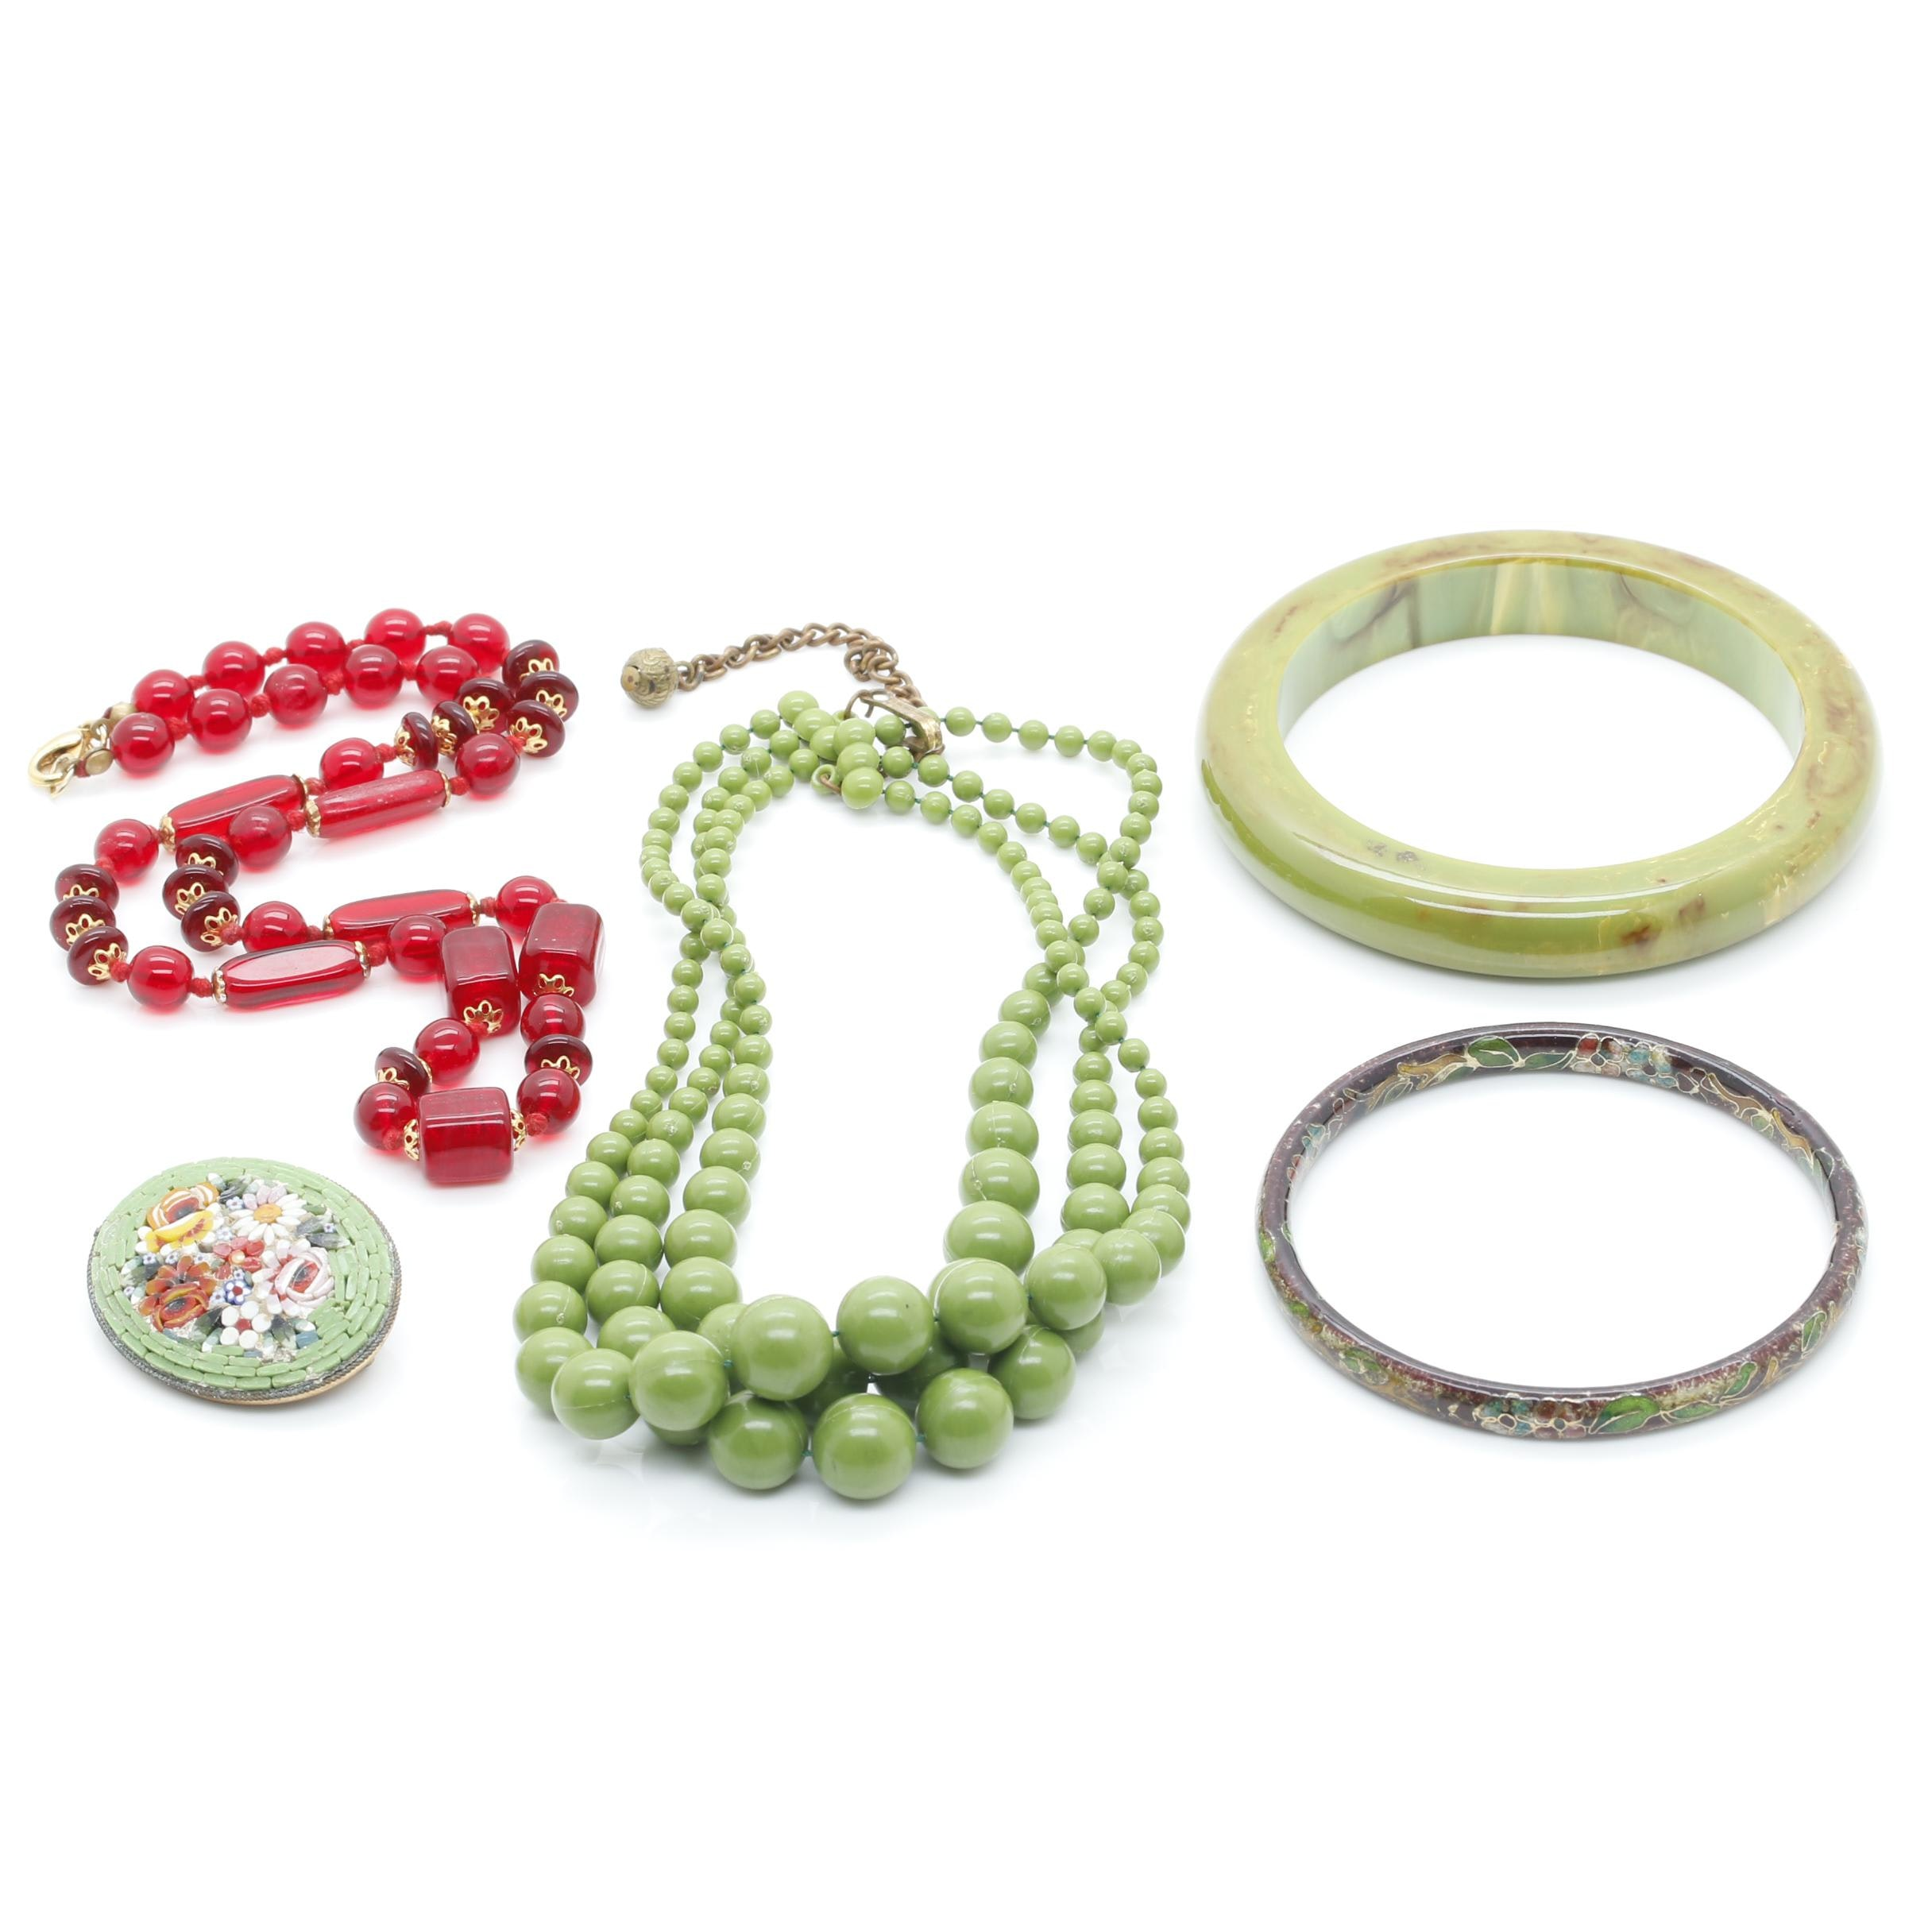 Gold Tone Jewelry Assortment Featuring Bakelite and Glass